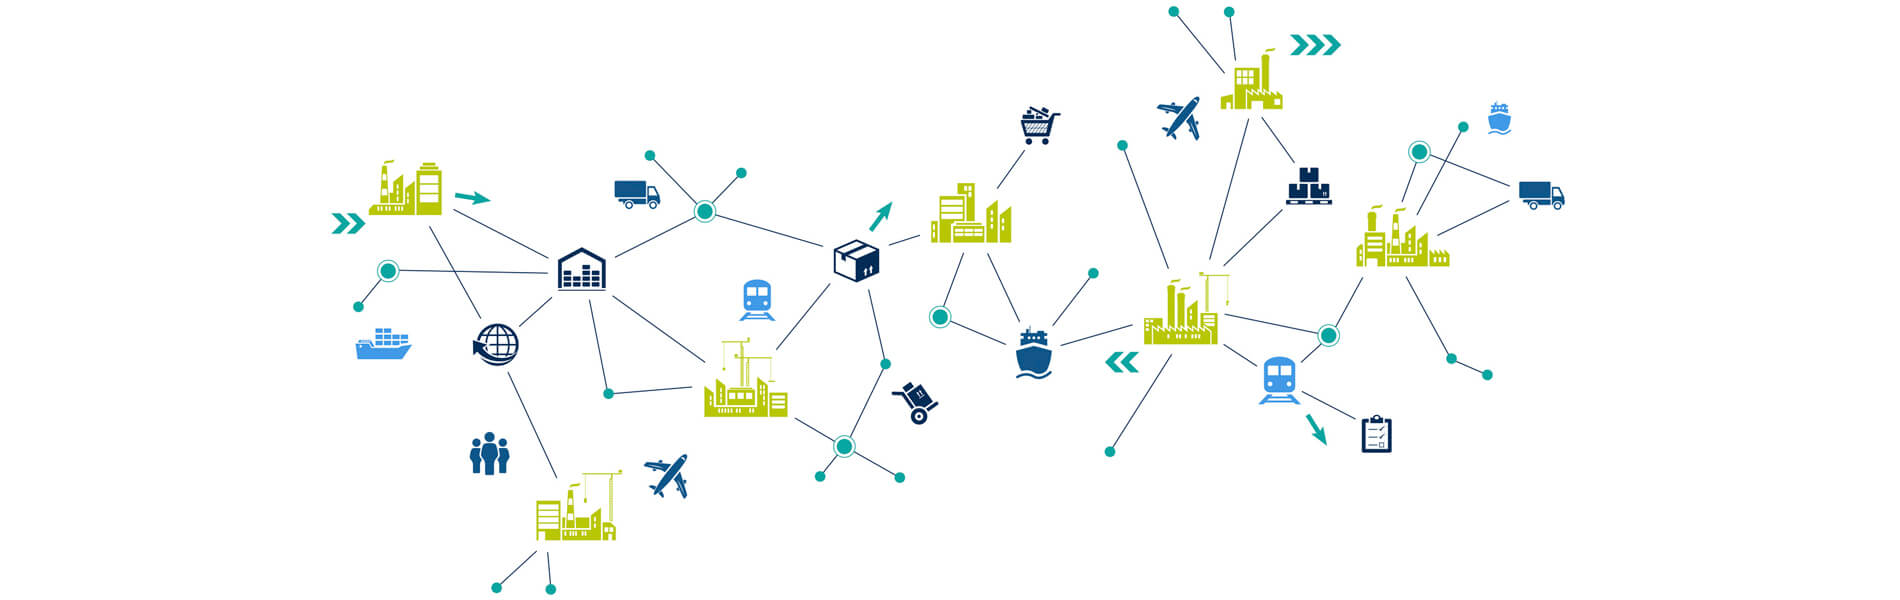 Supply chain: Sharing data brings more benefits